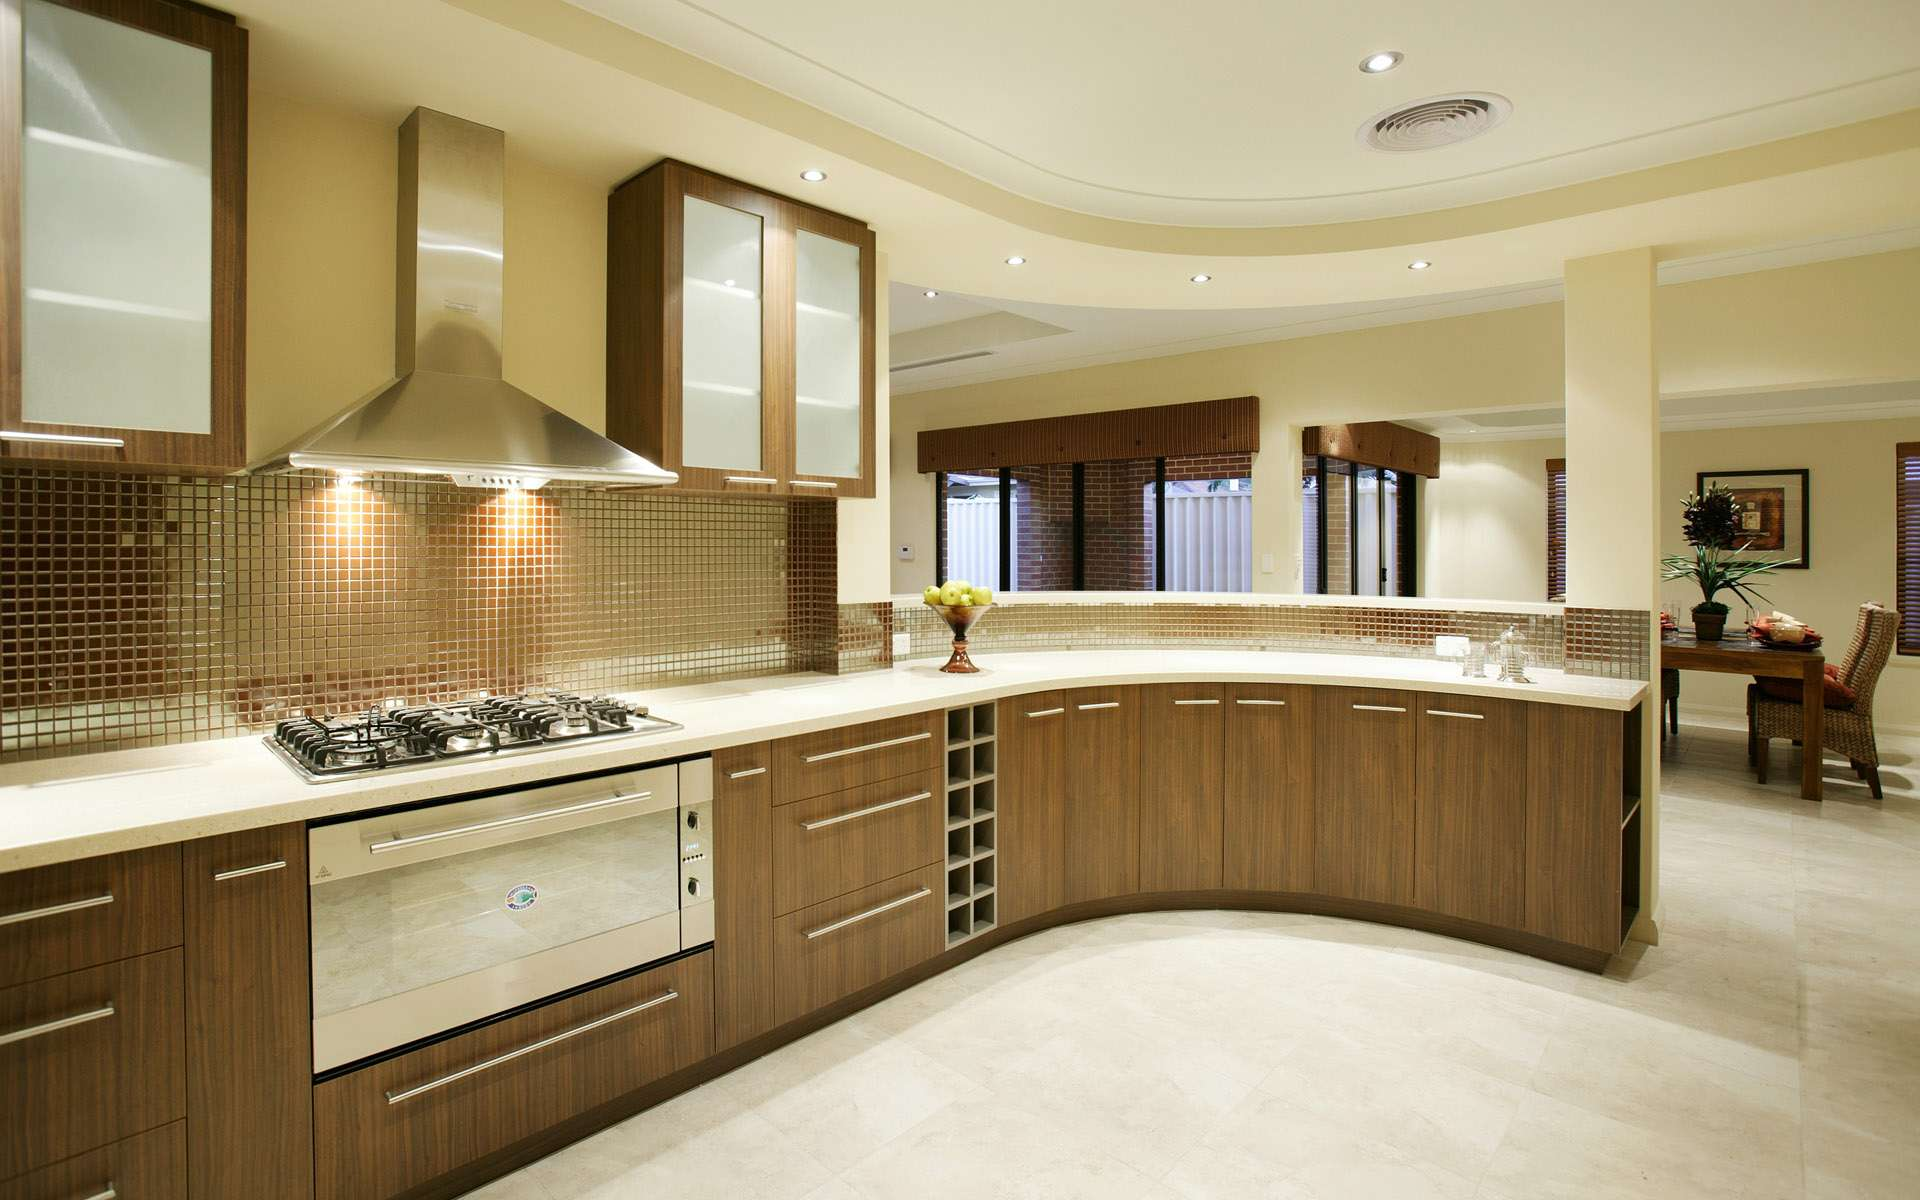 New Modern Kitchen Design Latest Interior Ideas